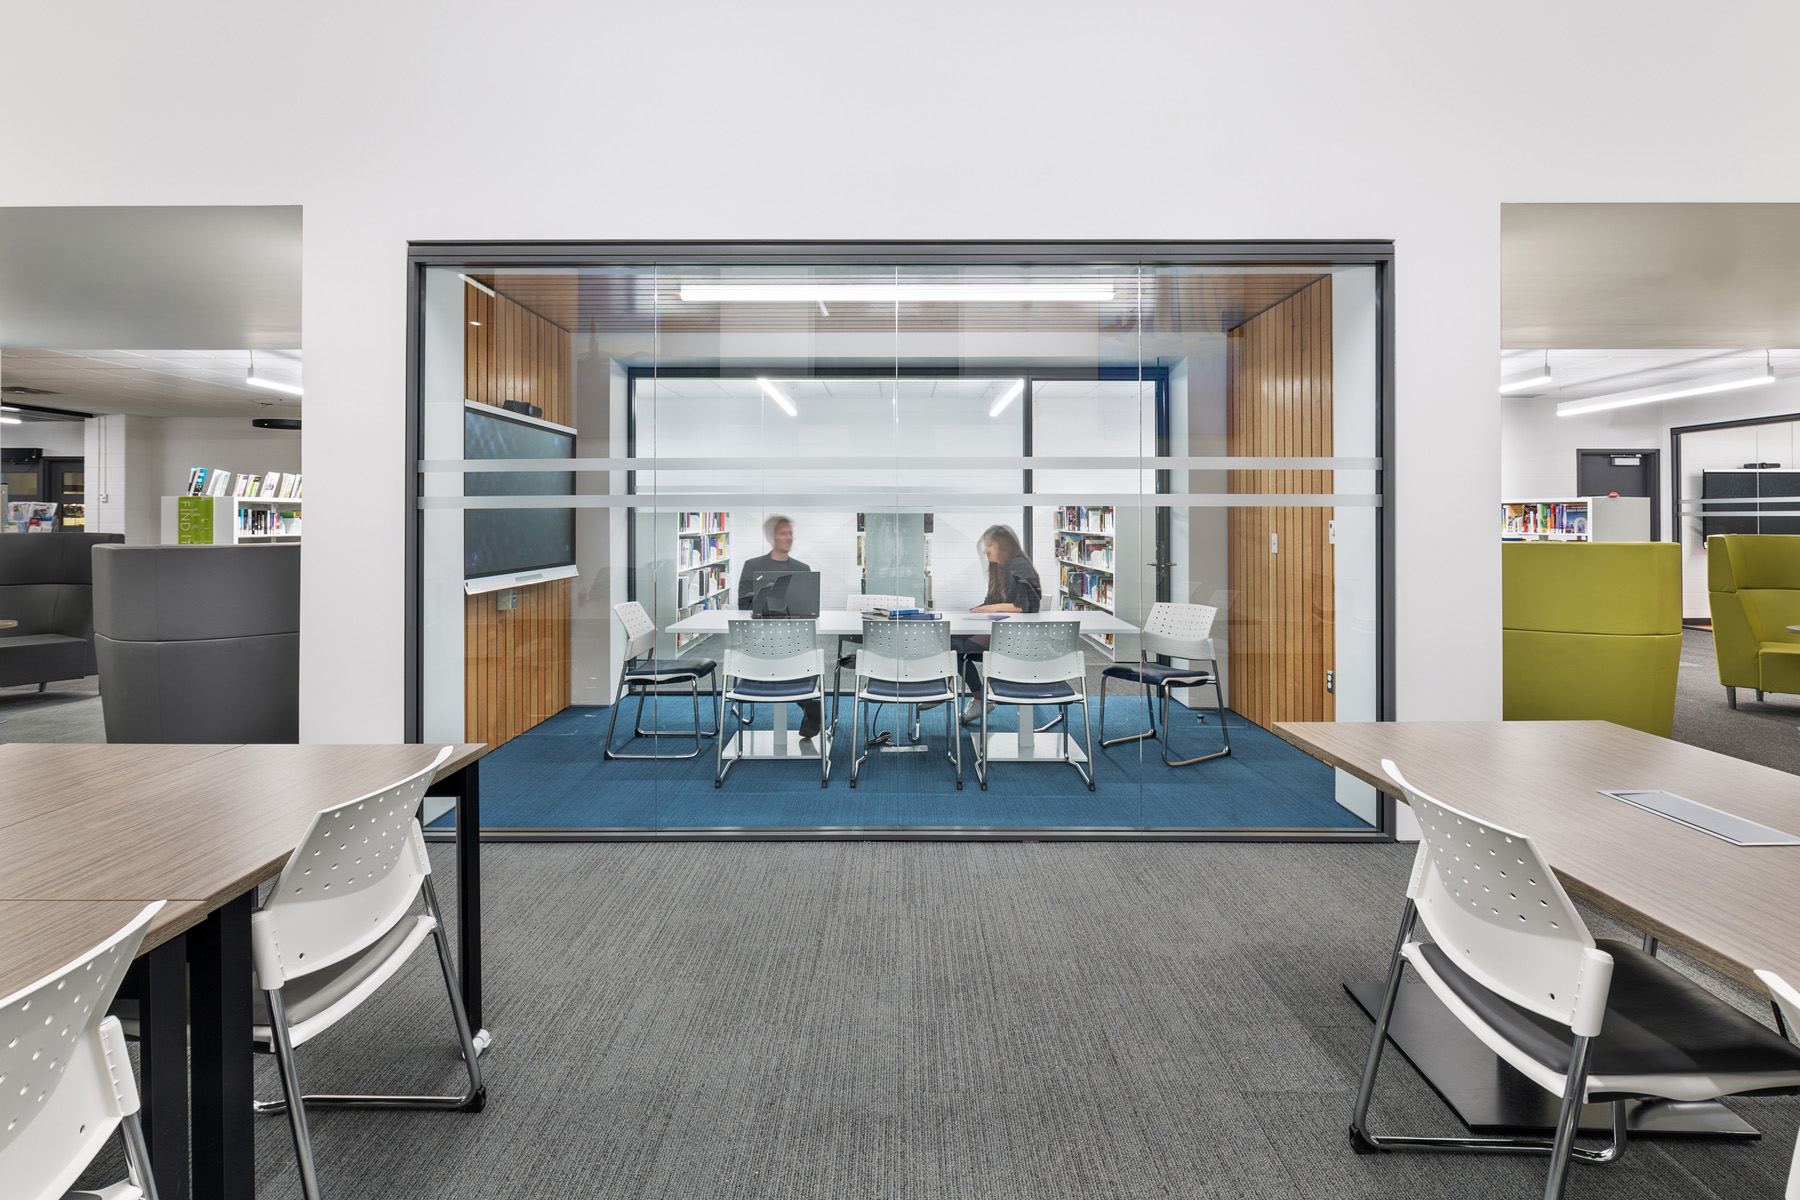 Two students in central glazed meeting room with blue carpet, white chairs, wood plank floor and ceiling feature and tv screen